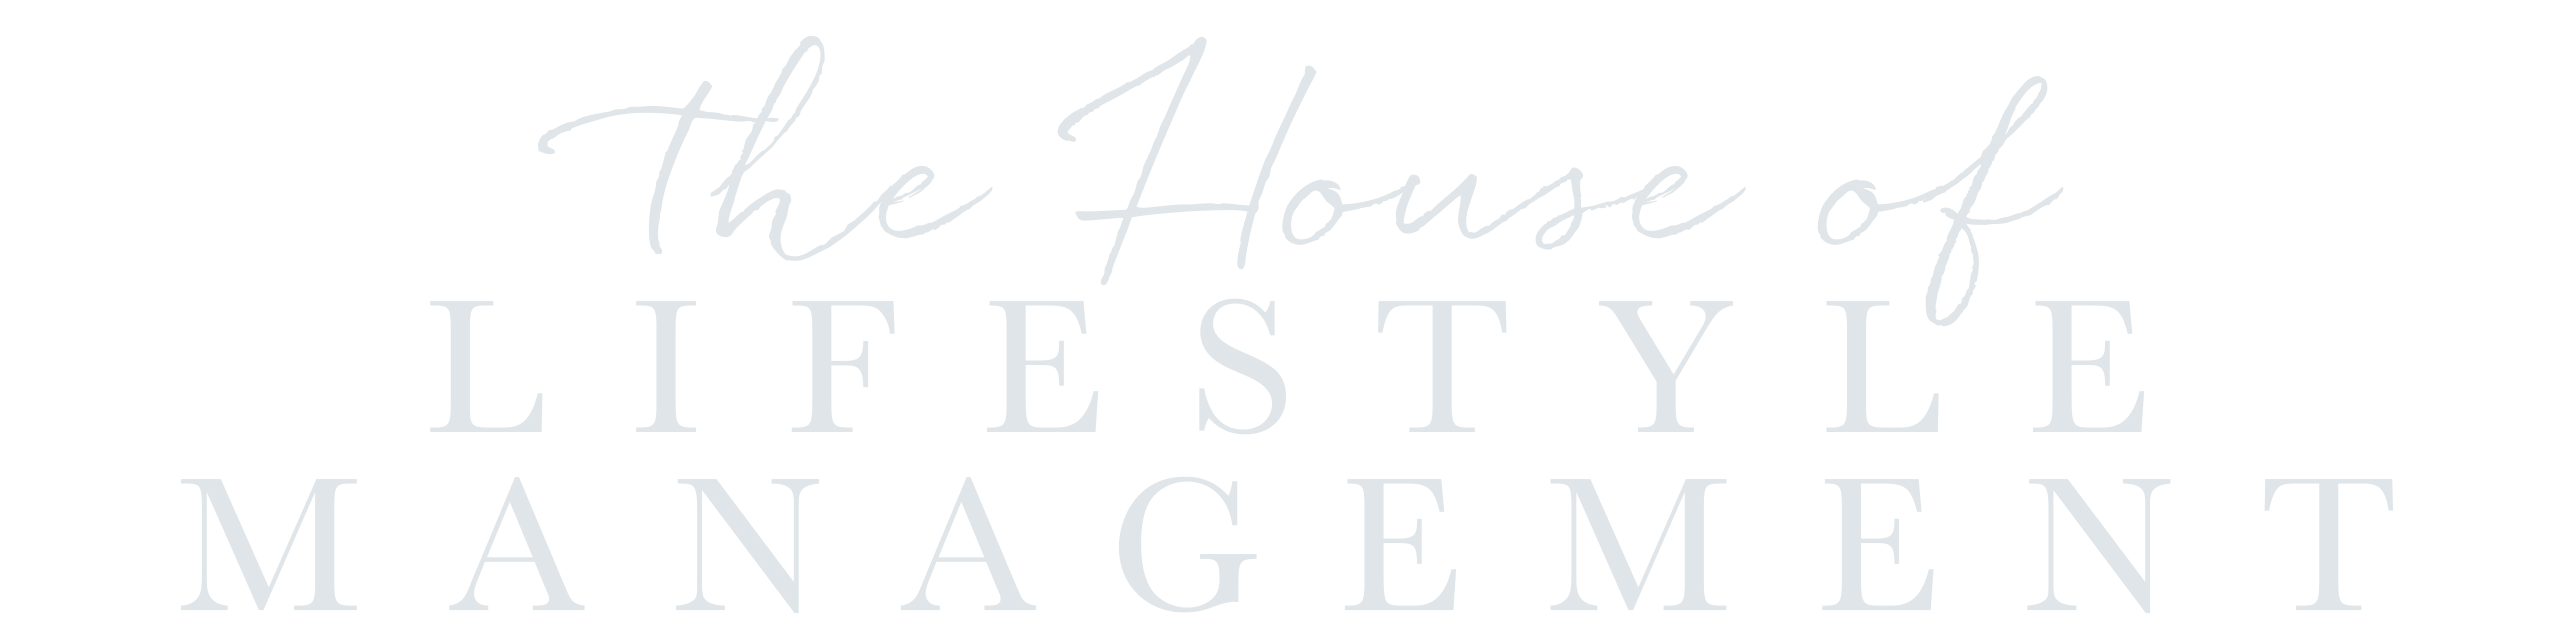 The House of LifeStyle Management Logo